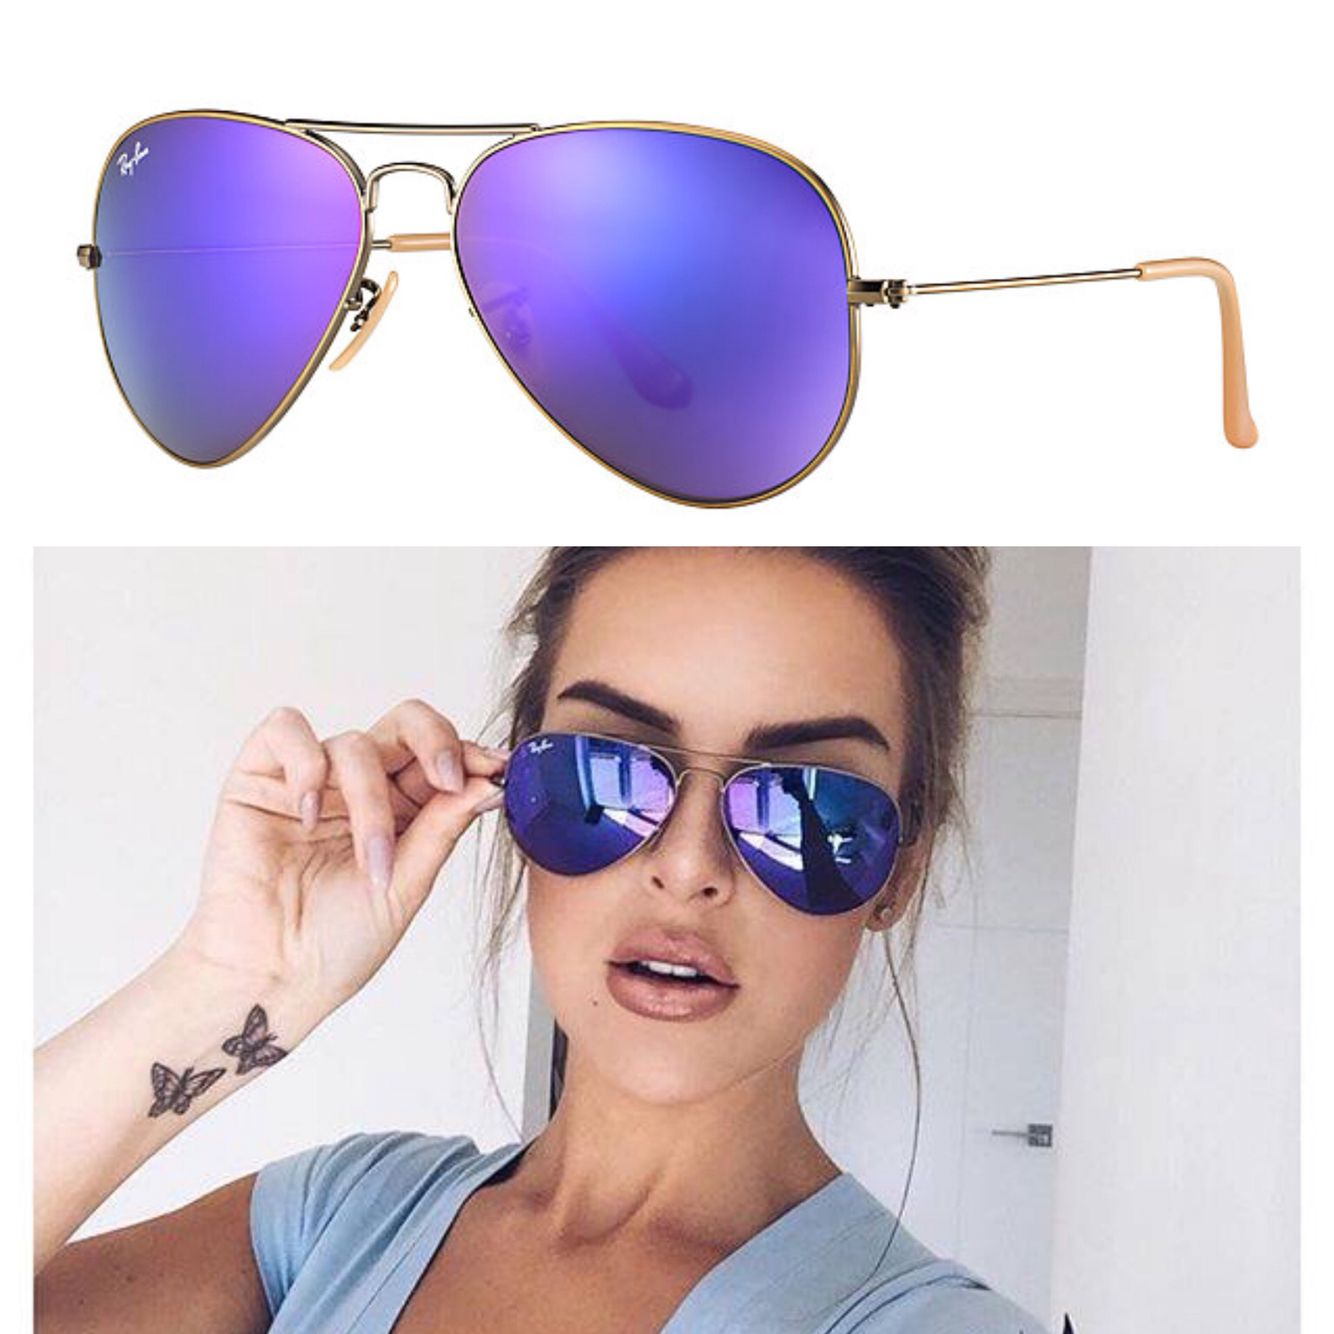 e34b49568d3 Ray-Ban Aviator Flash - Purple ✓ https   tmblr.co